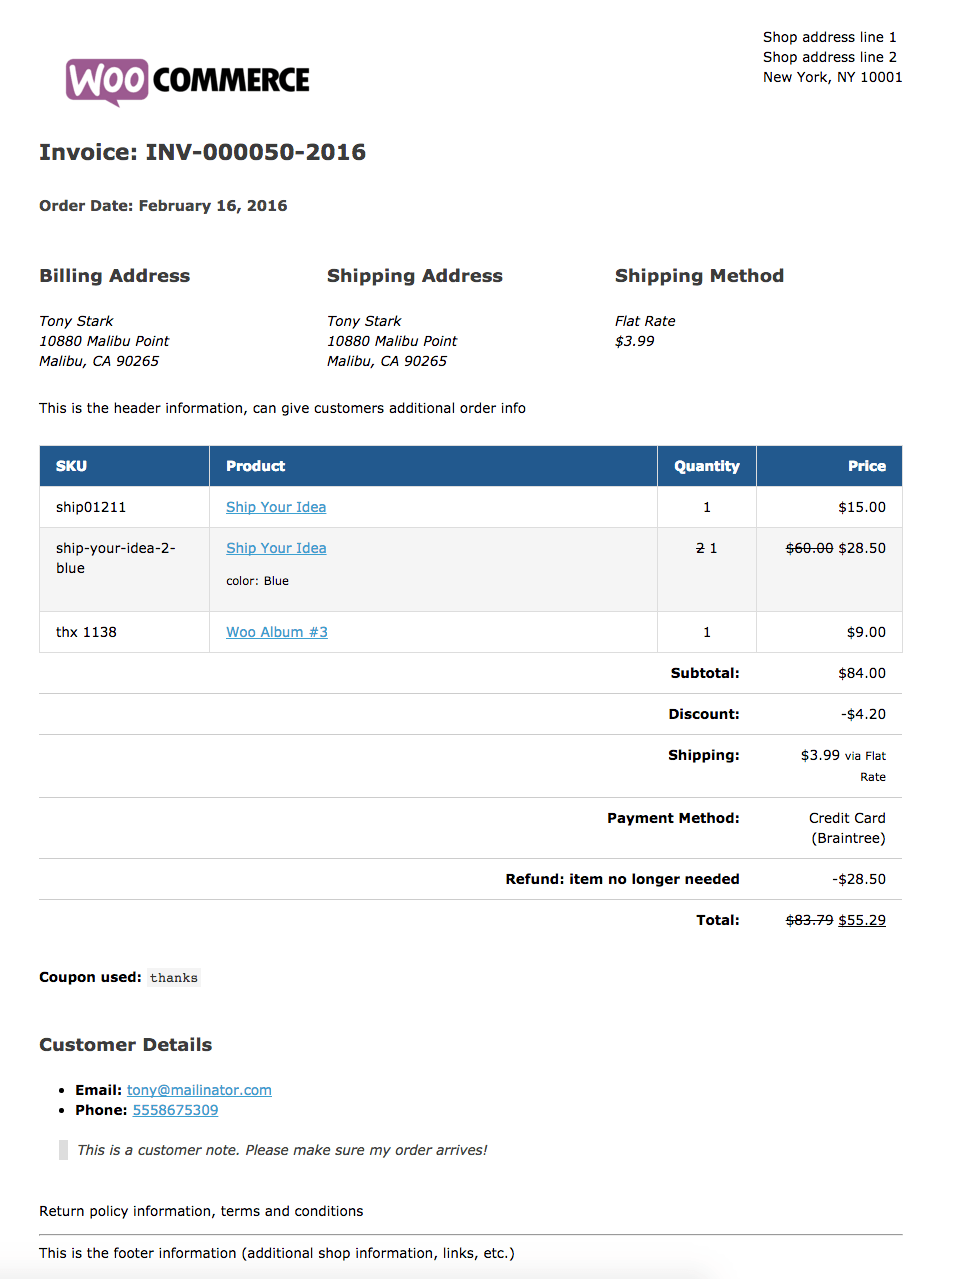 Aldiablosus  Marvelous Print Invoices Amp Packing Lists  Woocommerce With Engaging View A Sample Invoice  With Charming Vehicle Receipt Template Also Sabre Virtually There E Ticket Receipt In Addition Beef Receipts And Deductions Without Receipts As Well As Itunes Store Receipts Additionally M Toll Receipt From Woocommercecom With Aldiablosus  Engaging Print Invoices Amp Packing Lists  Woocommerce With Charming View A Sample Invoice  And Marvelous Vehicle Receipt Template Also Sabre Virtually There E Ticket Receipt In Addition Beef Receipts From Woocommercecom